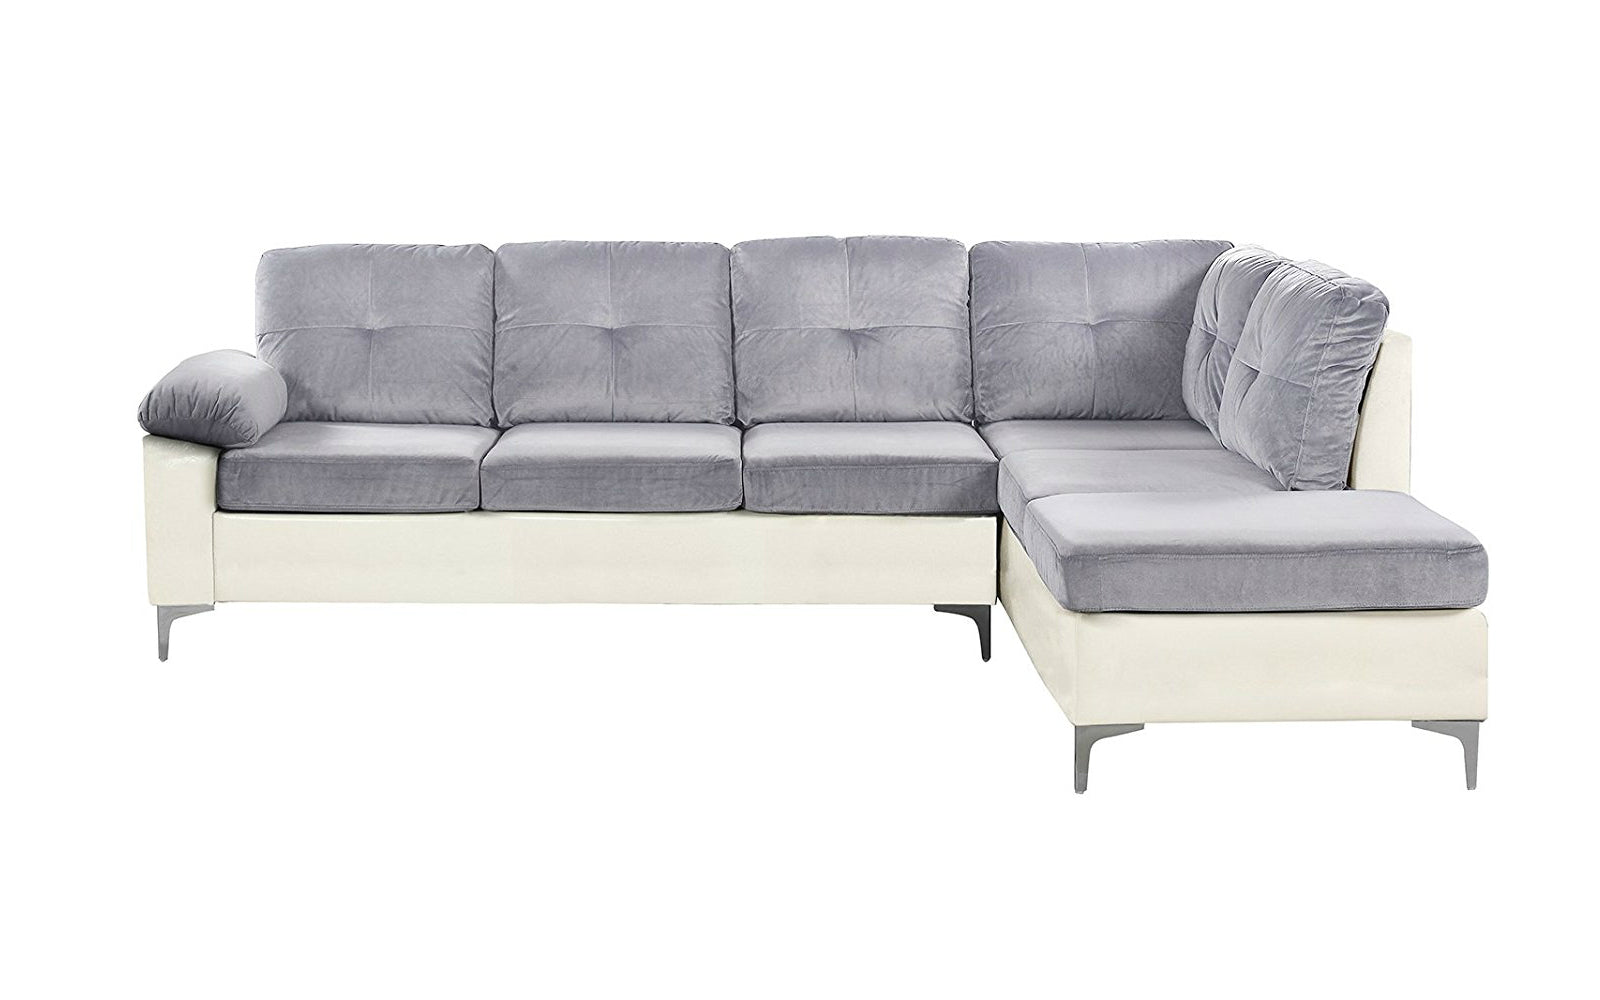 Microfiber Faux Leather Sectional Sofa Image